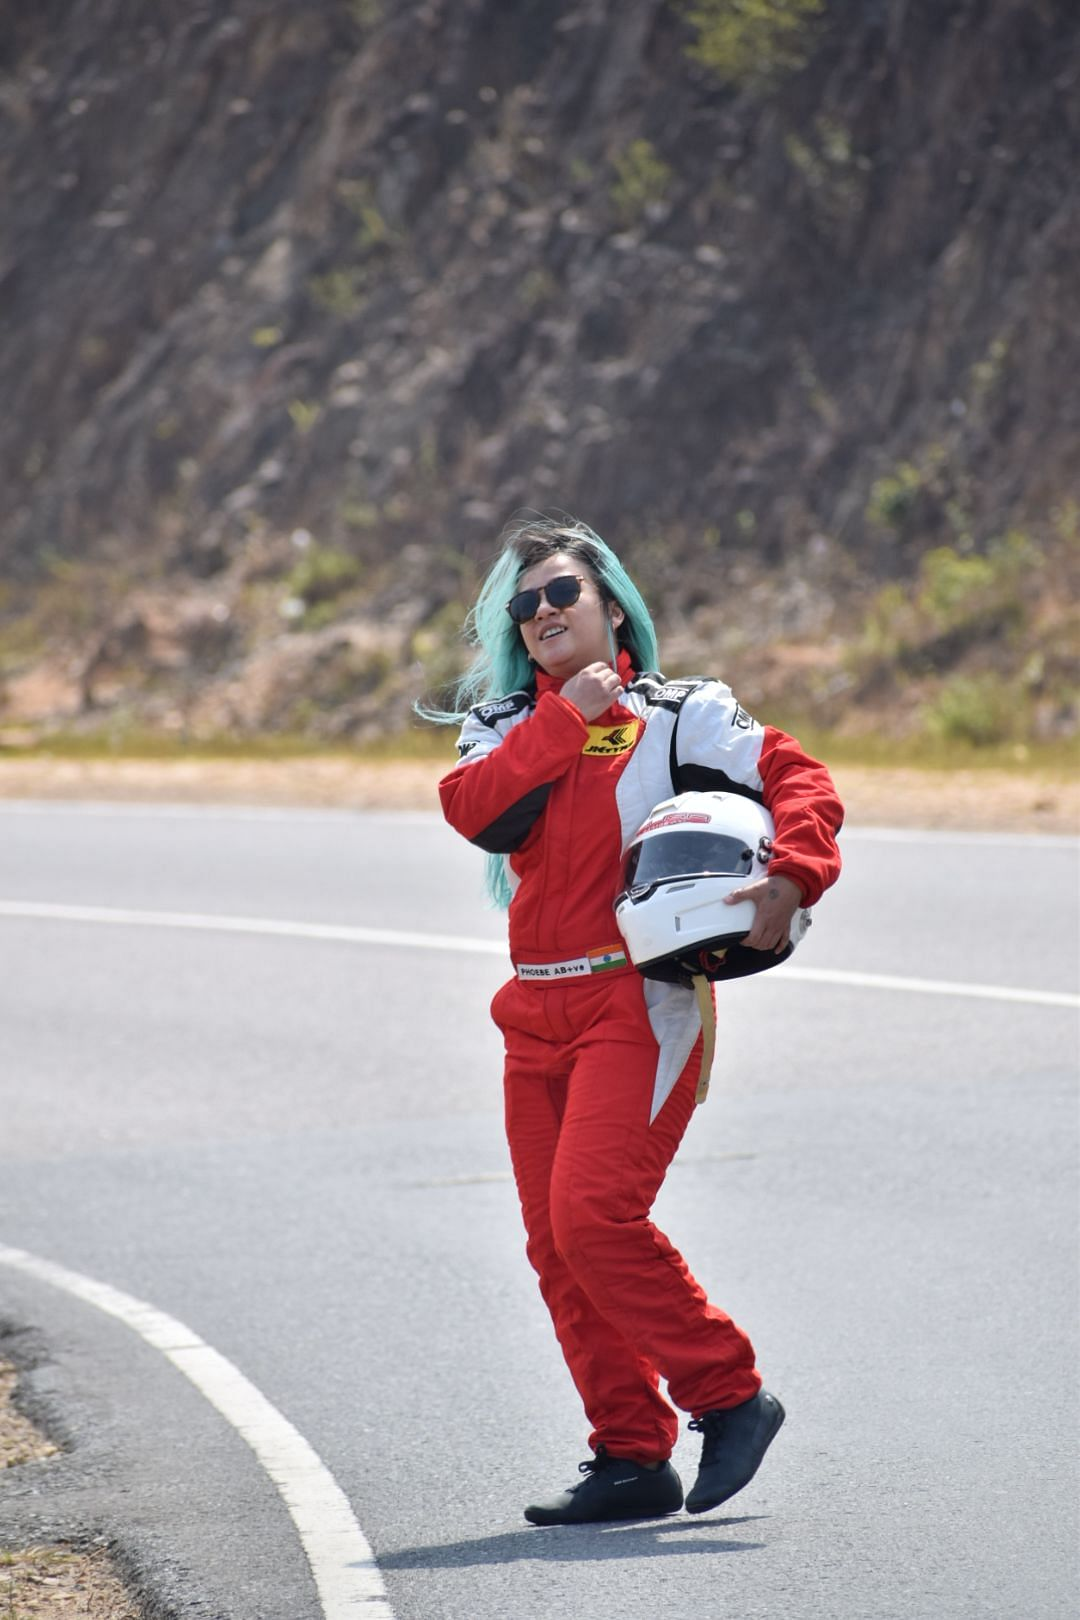 From conquering the dirt tracks as an Indian National Rally Champion, to a Formula 4 driver, Phoebe Dale Nongrum aims for a podium finish now